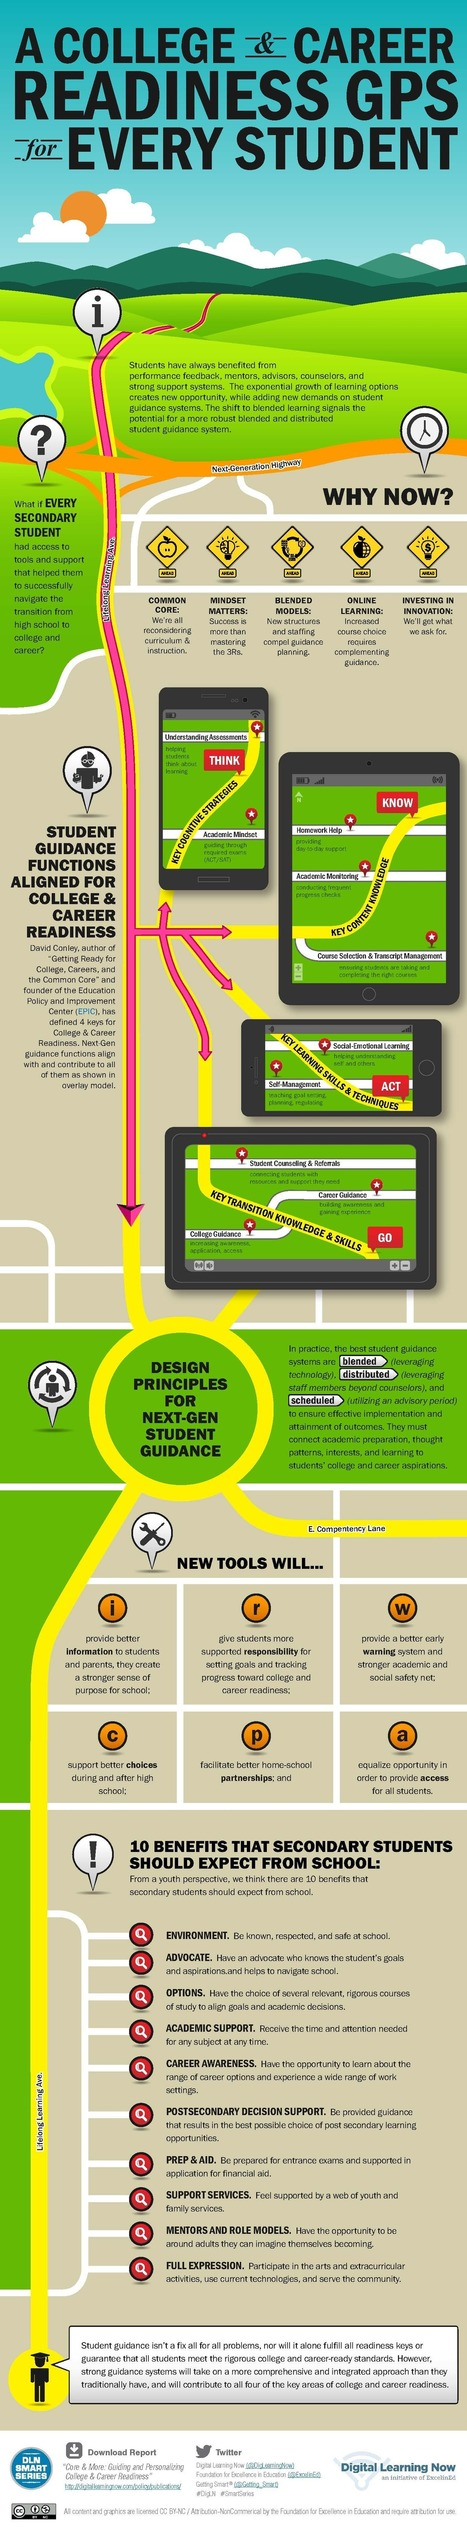 Infographic: College and Career Readiness GPS for Every Student - Getting Smart by Getting Smart Staff - CCSS, common core, deeper learning, DigLN, edreform, education, personalized learning   College and Career Readiness   Scoop.it